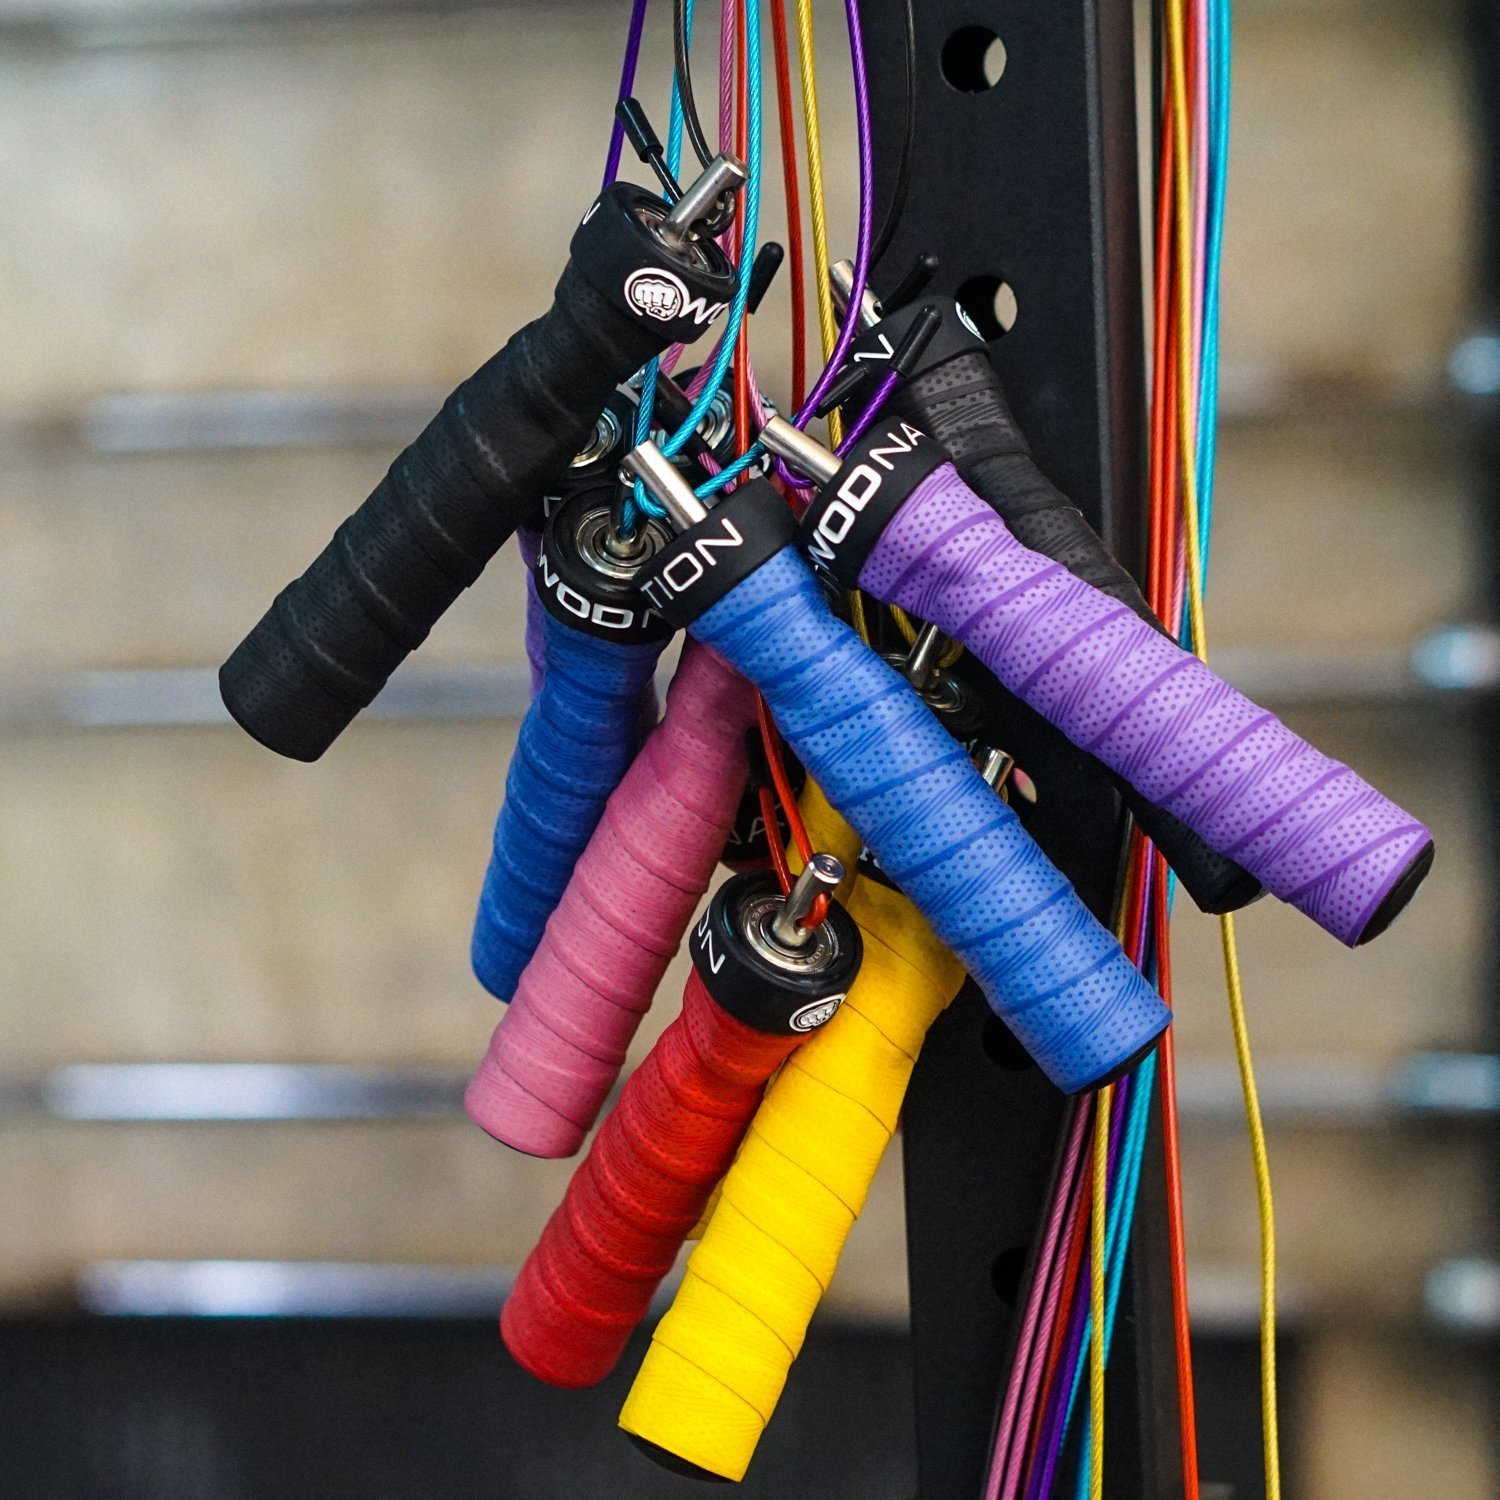 How to choose a skipping rope?